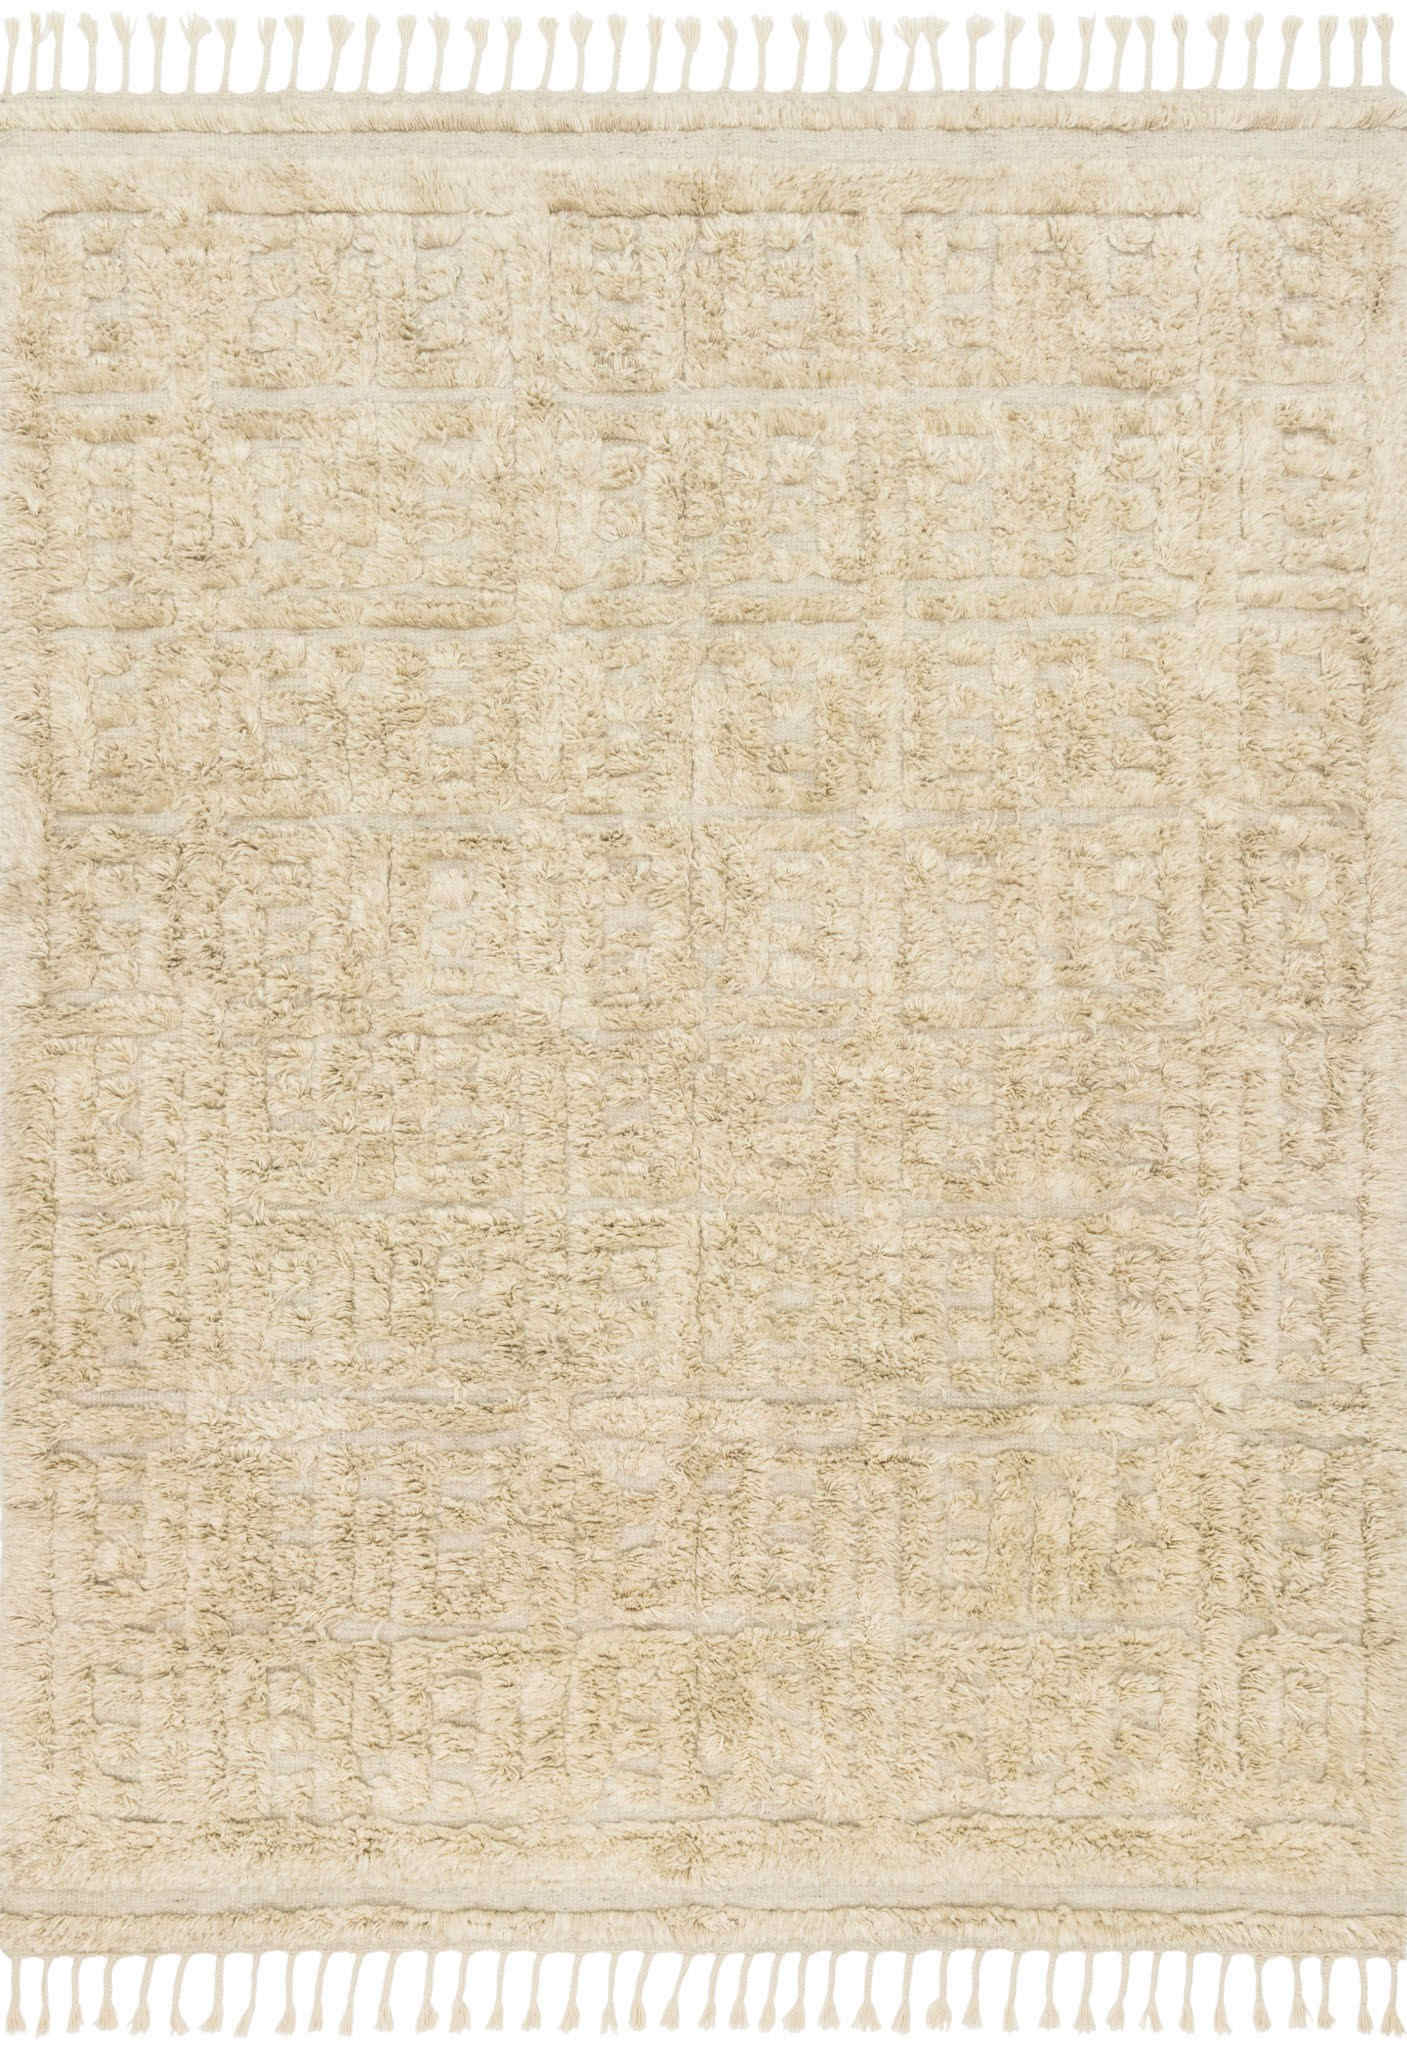 Loloi Hygge Contemporary Rugs Yg-04